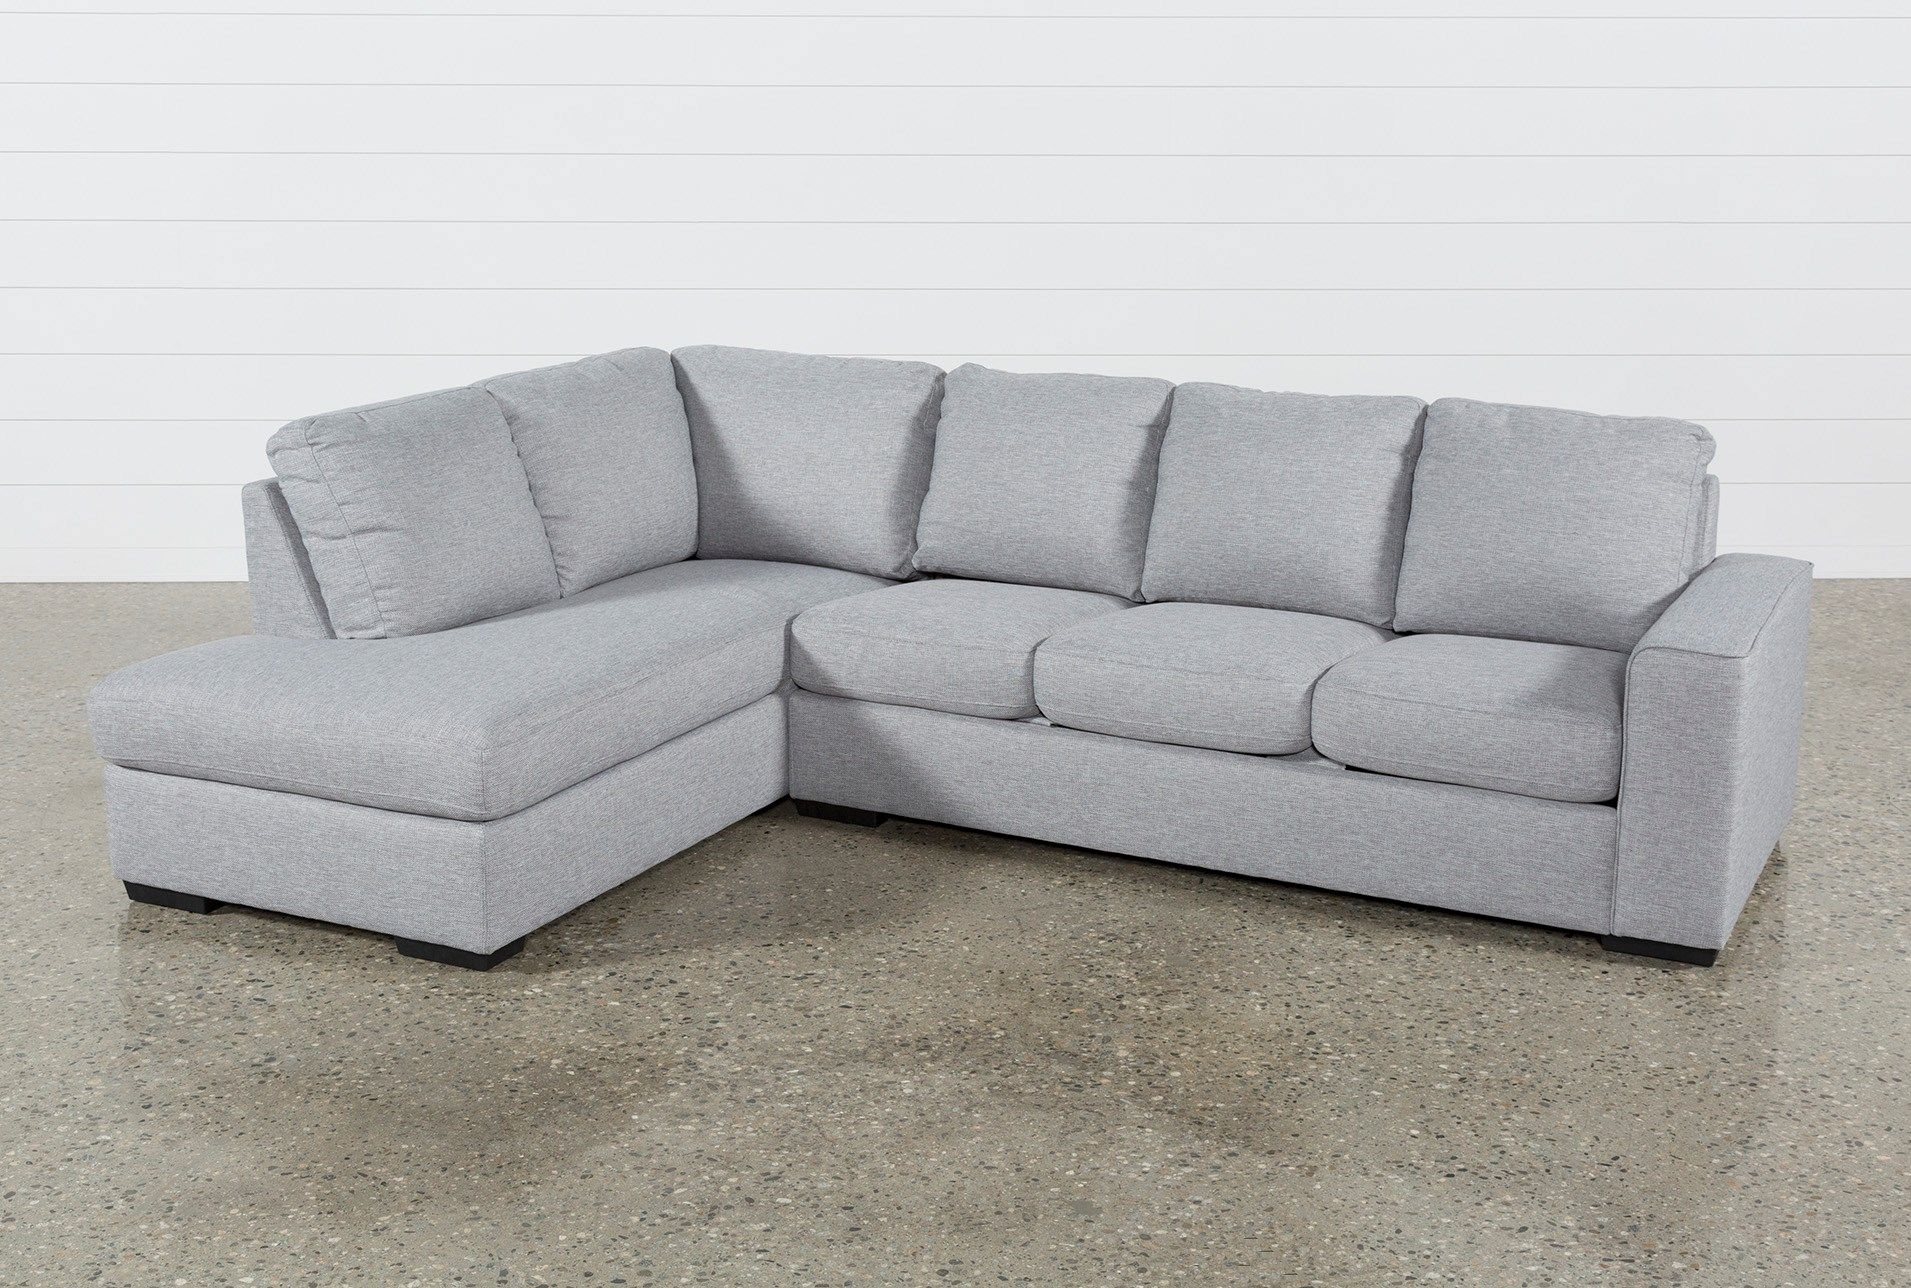 Lucy Grey 2 Piece Sectional W/laf Chaise | Tx House | Pinterest For Lucy Grey 2 Piece Sleeper Sectionals With Raf Chaise (View 2 of 25)